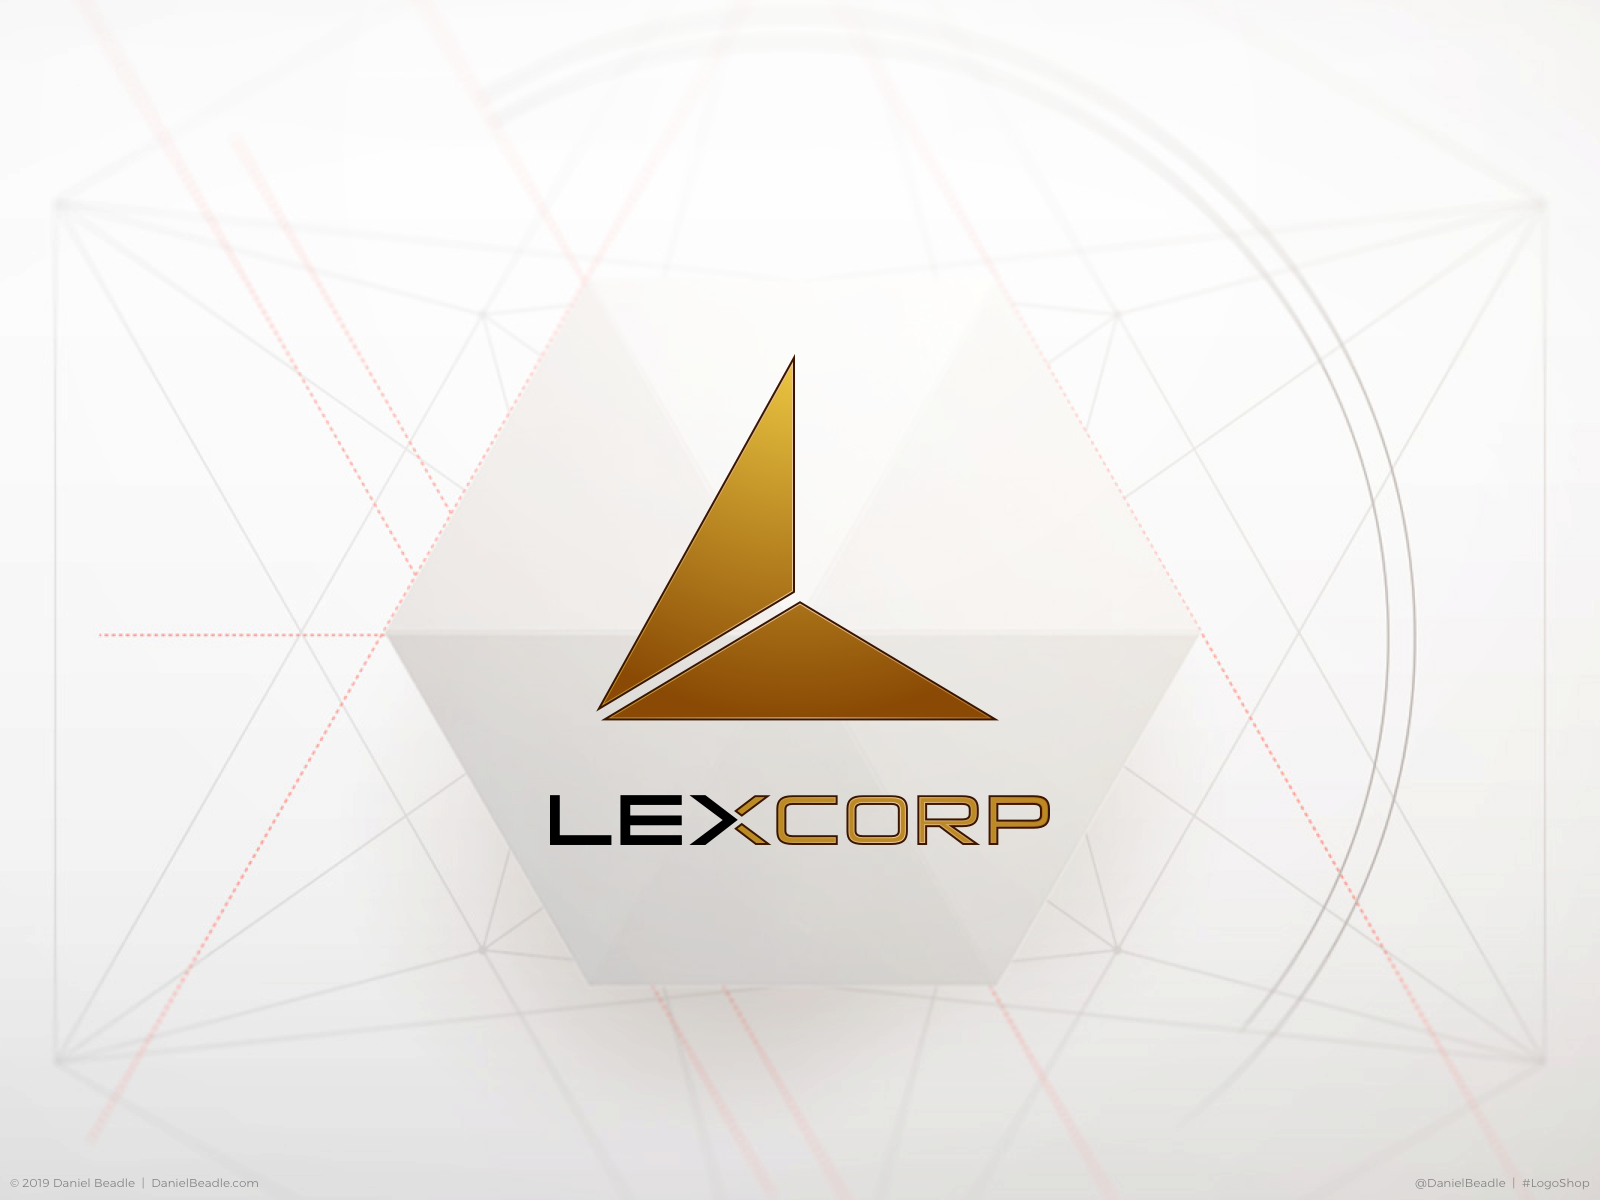 LexCorp Logo by Daniel Beadle on Dribbble.